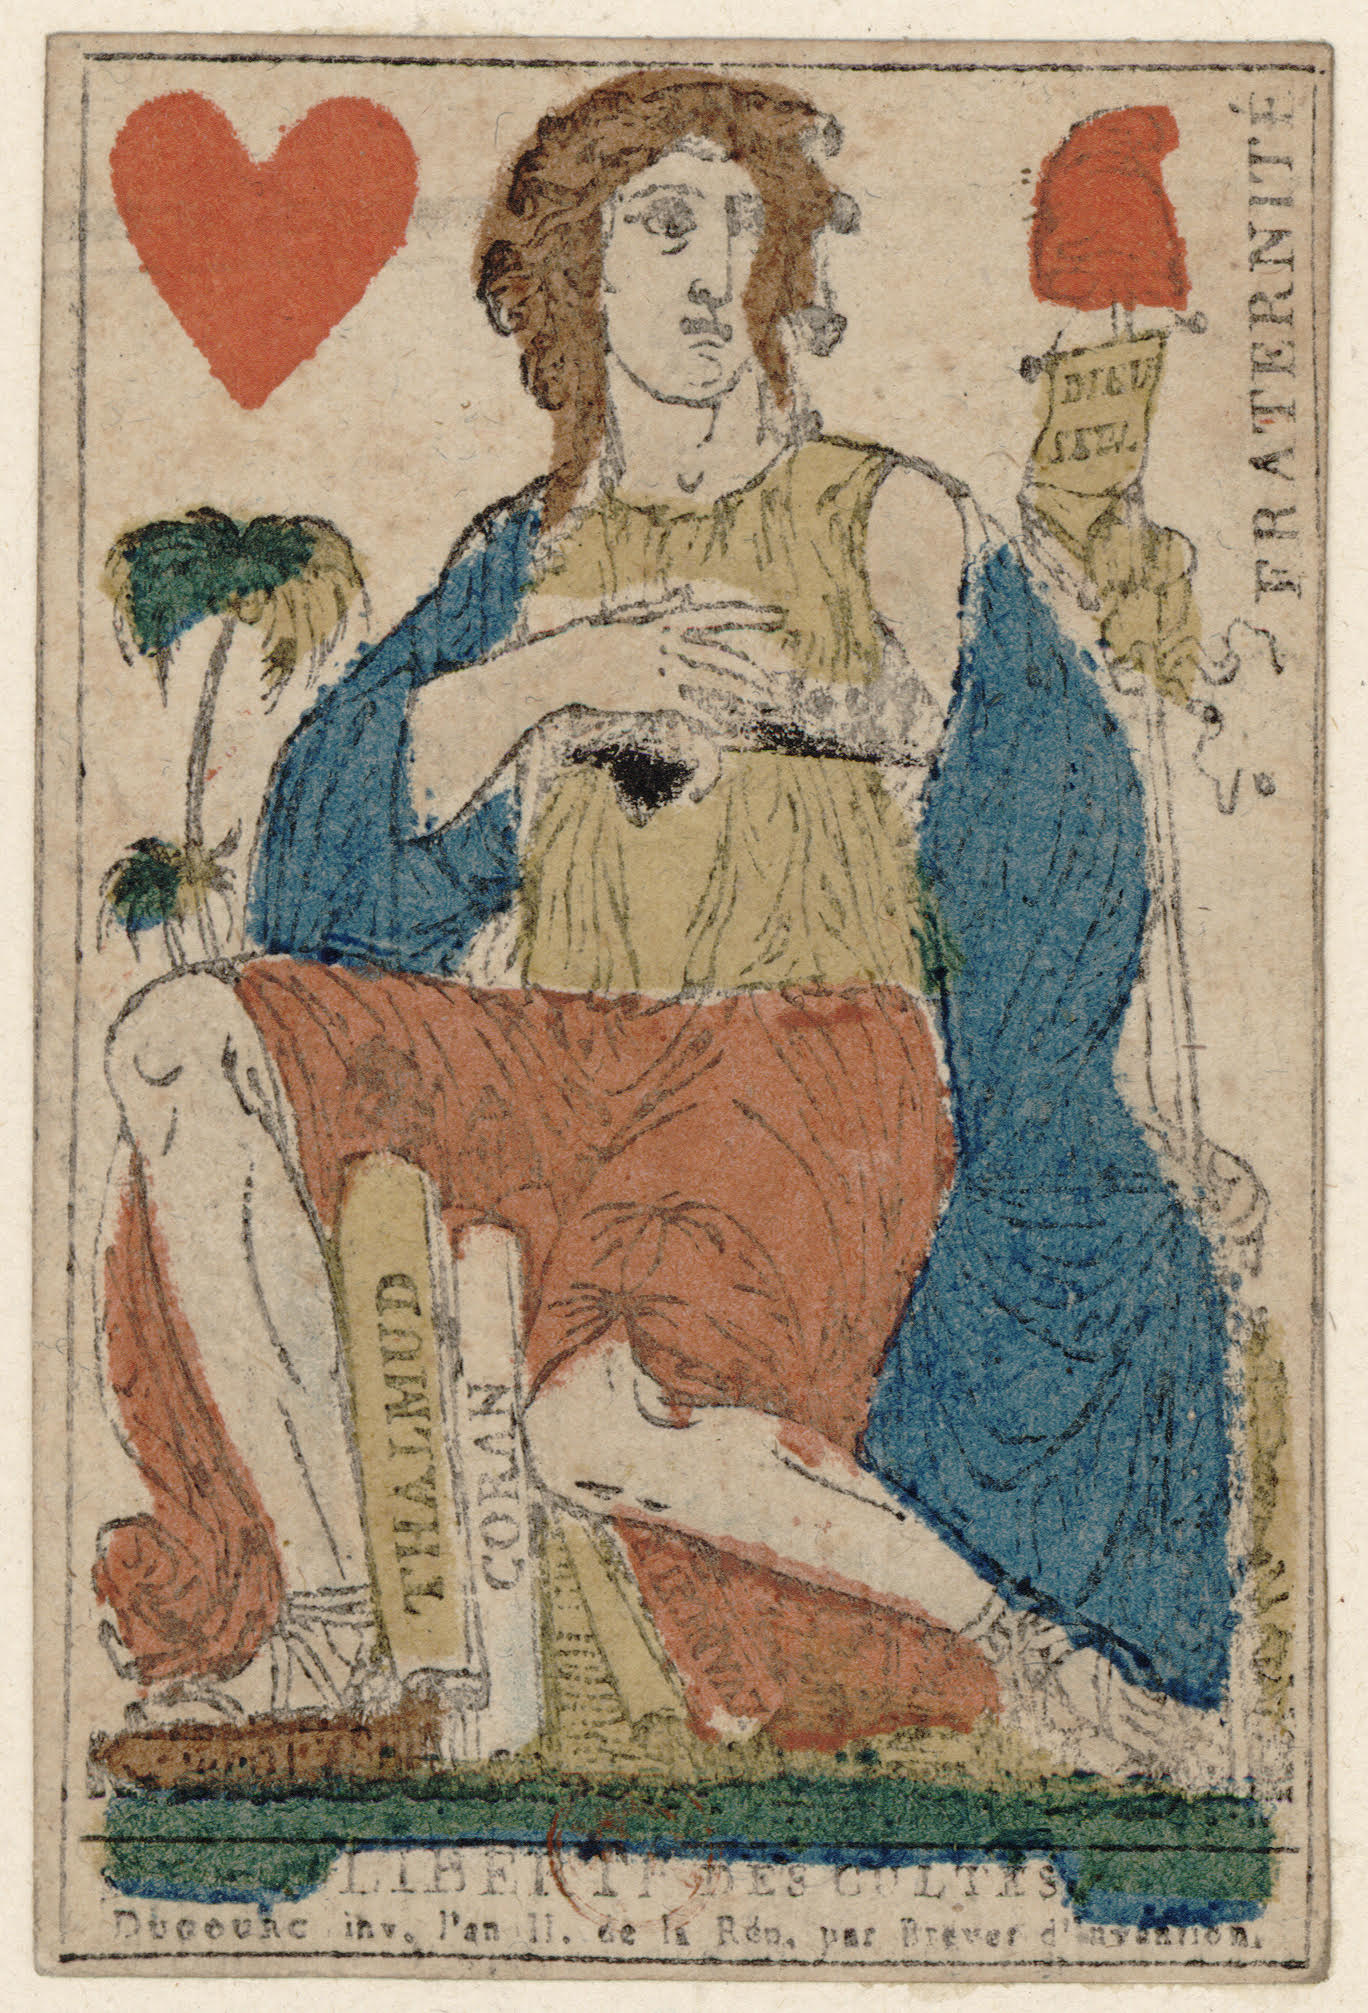 A playing card that shows a woman seating with the Koran and the Thalmud.